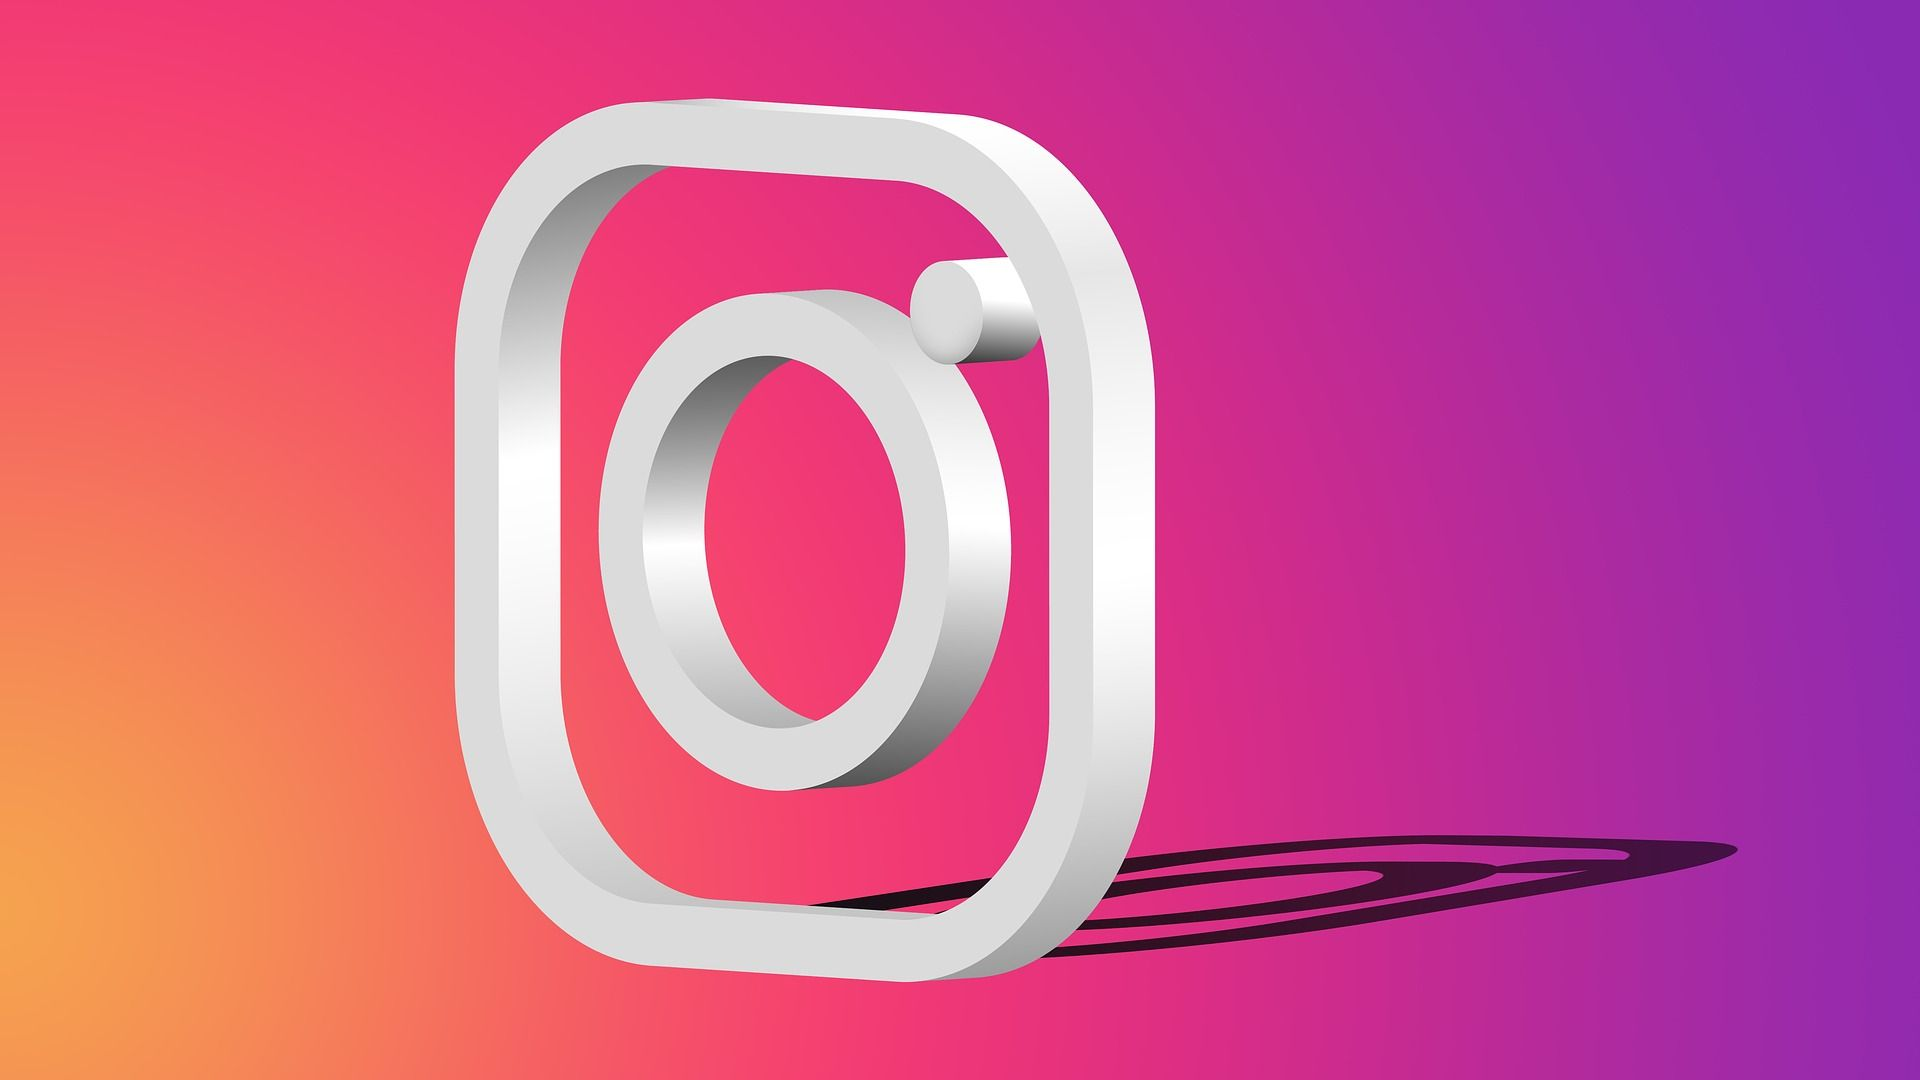 Buy Instagram likes fast and let your business achieve more